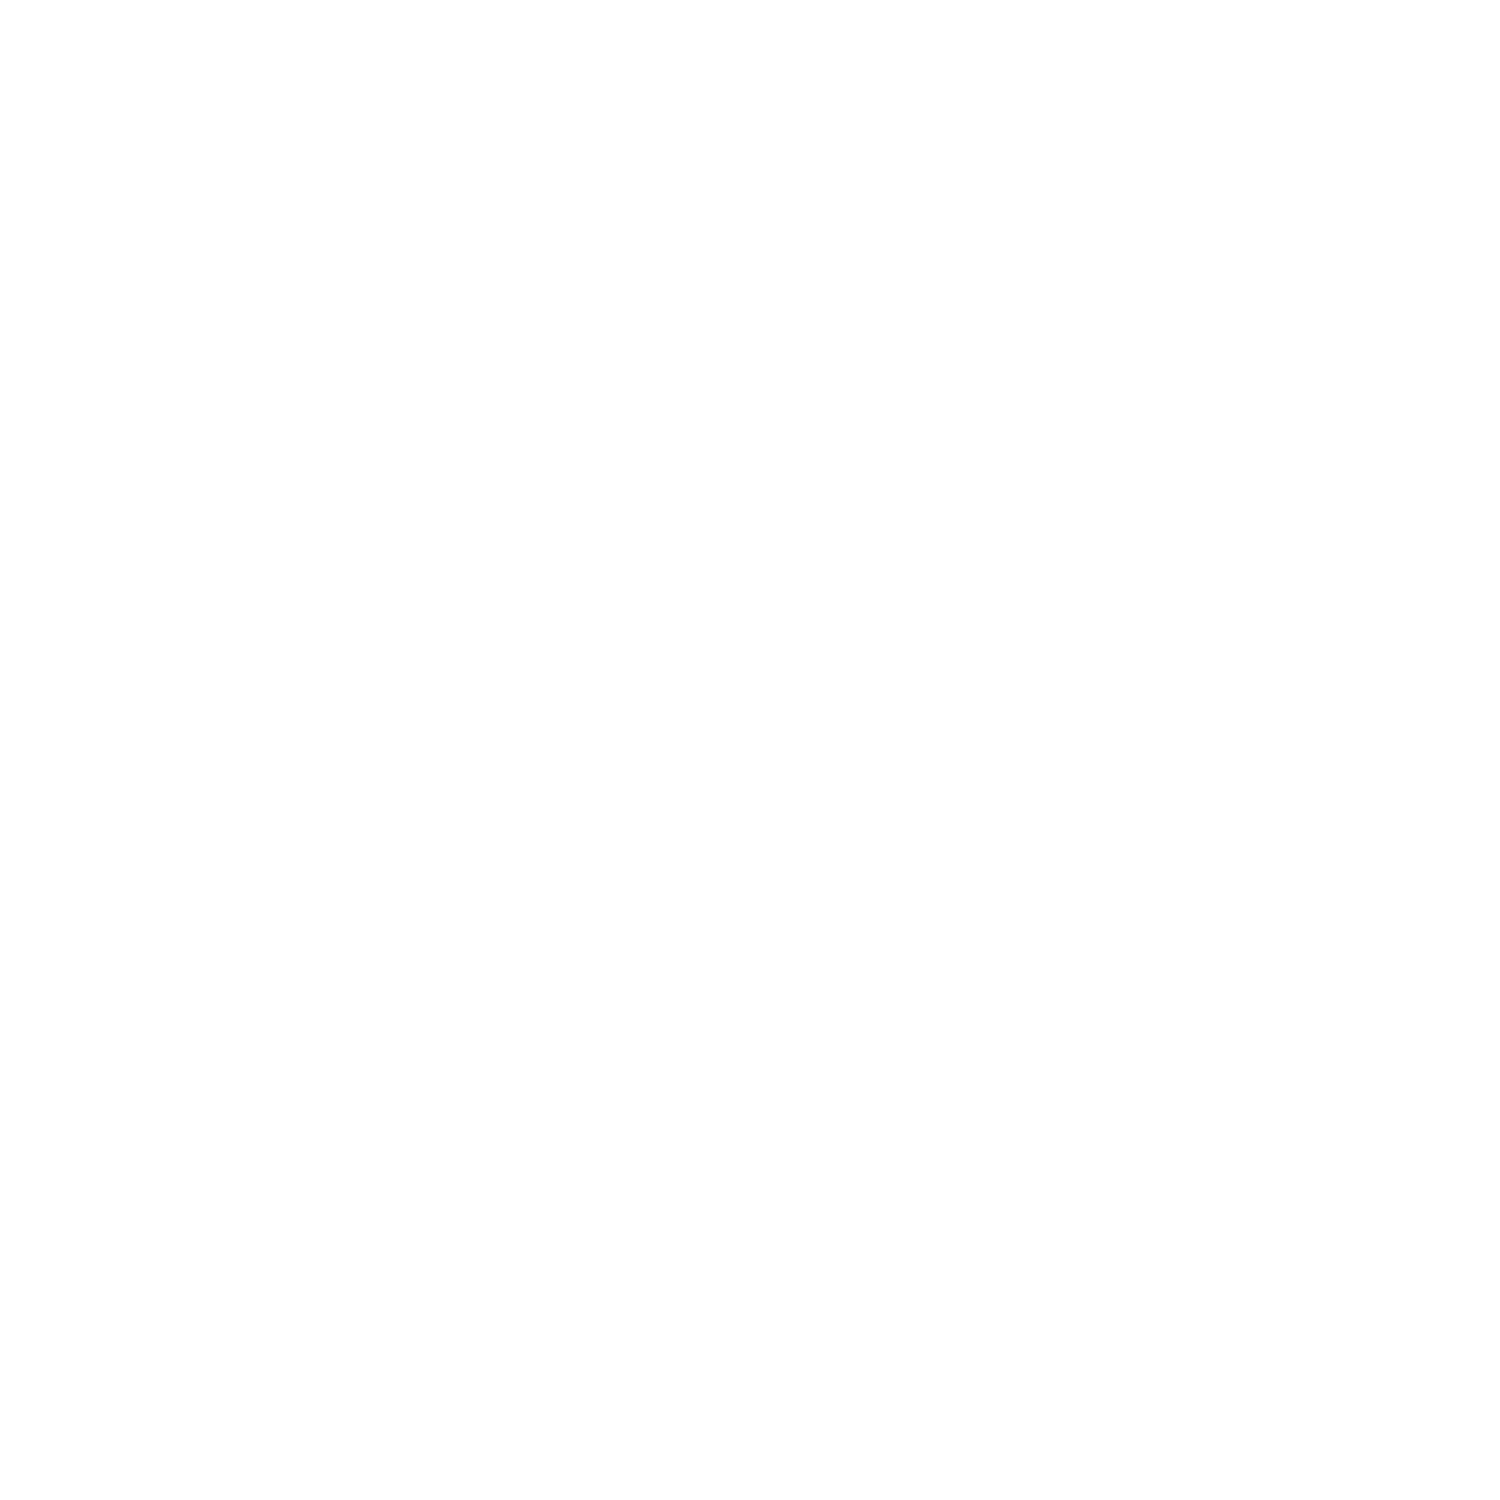 KEE OYSTER HOUSE